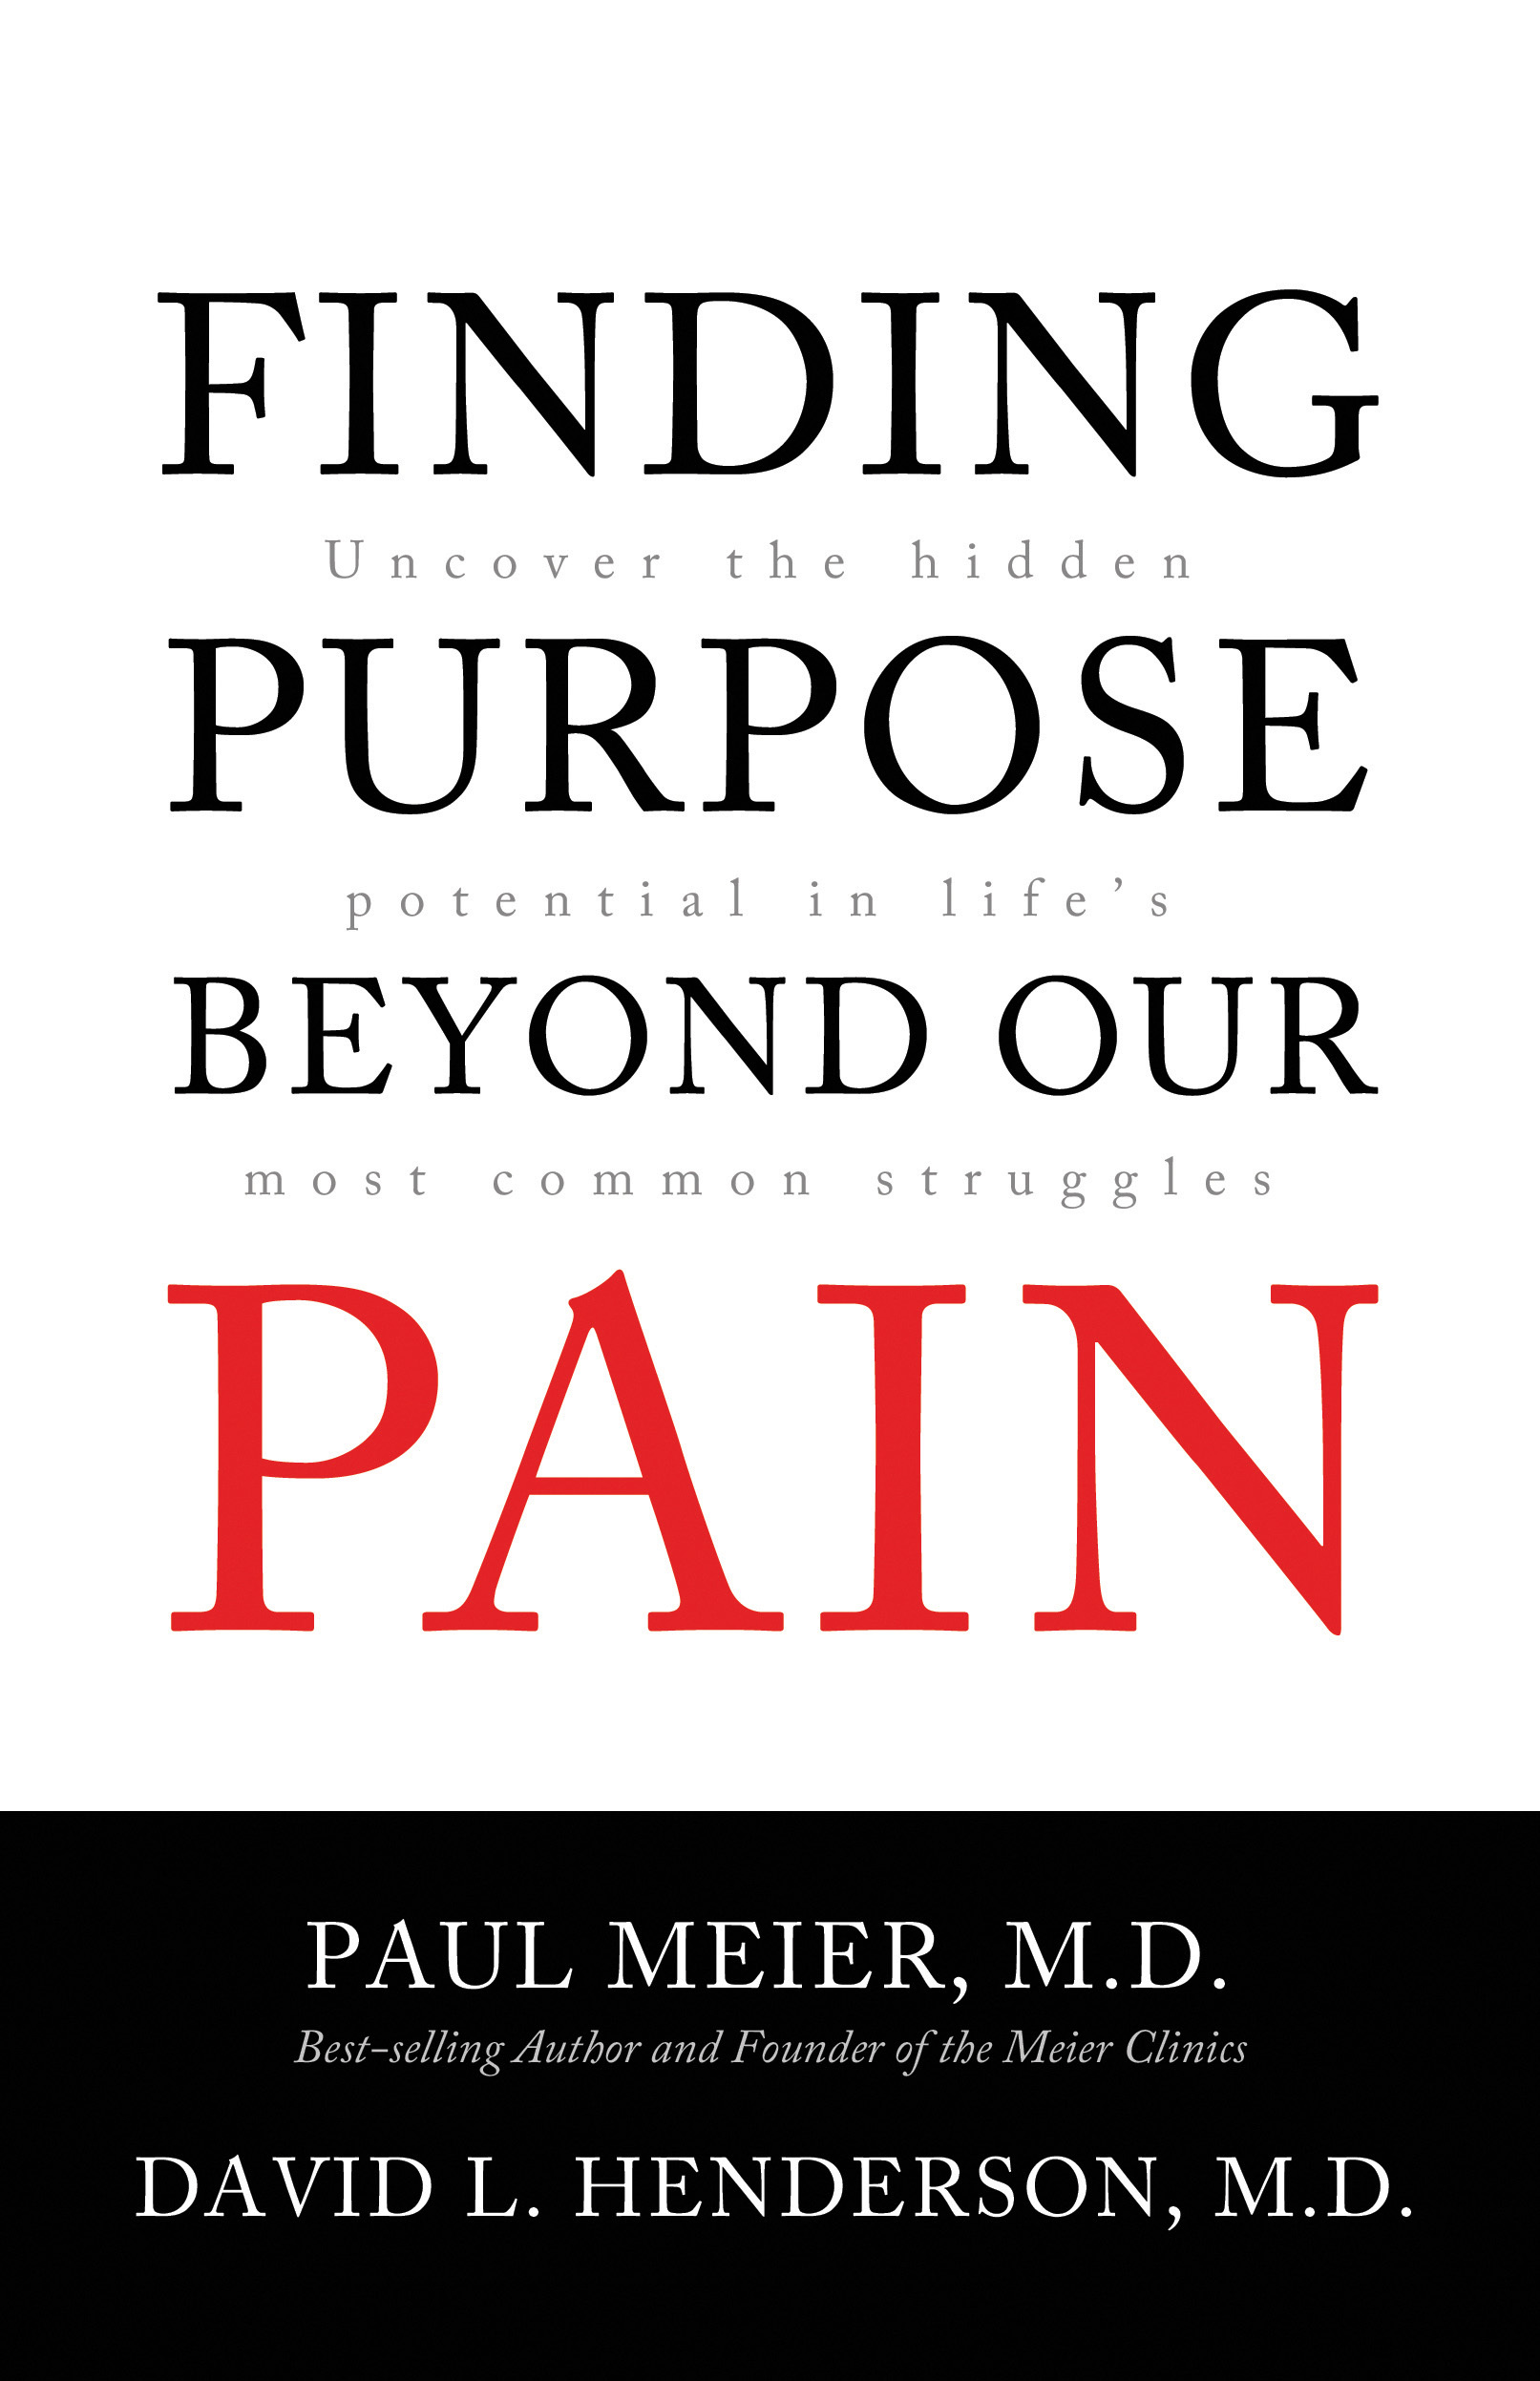 Finding Purpose Beyond Our Pain: Uncover the Hidden Potential in Life's Most Common Struggles